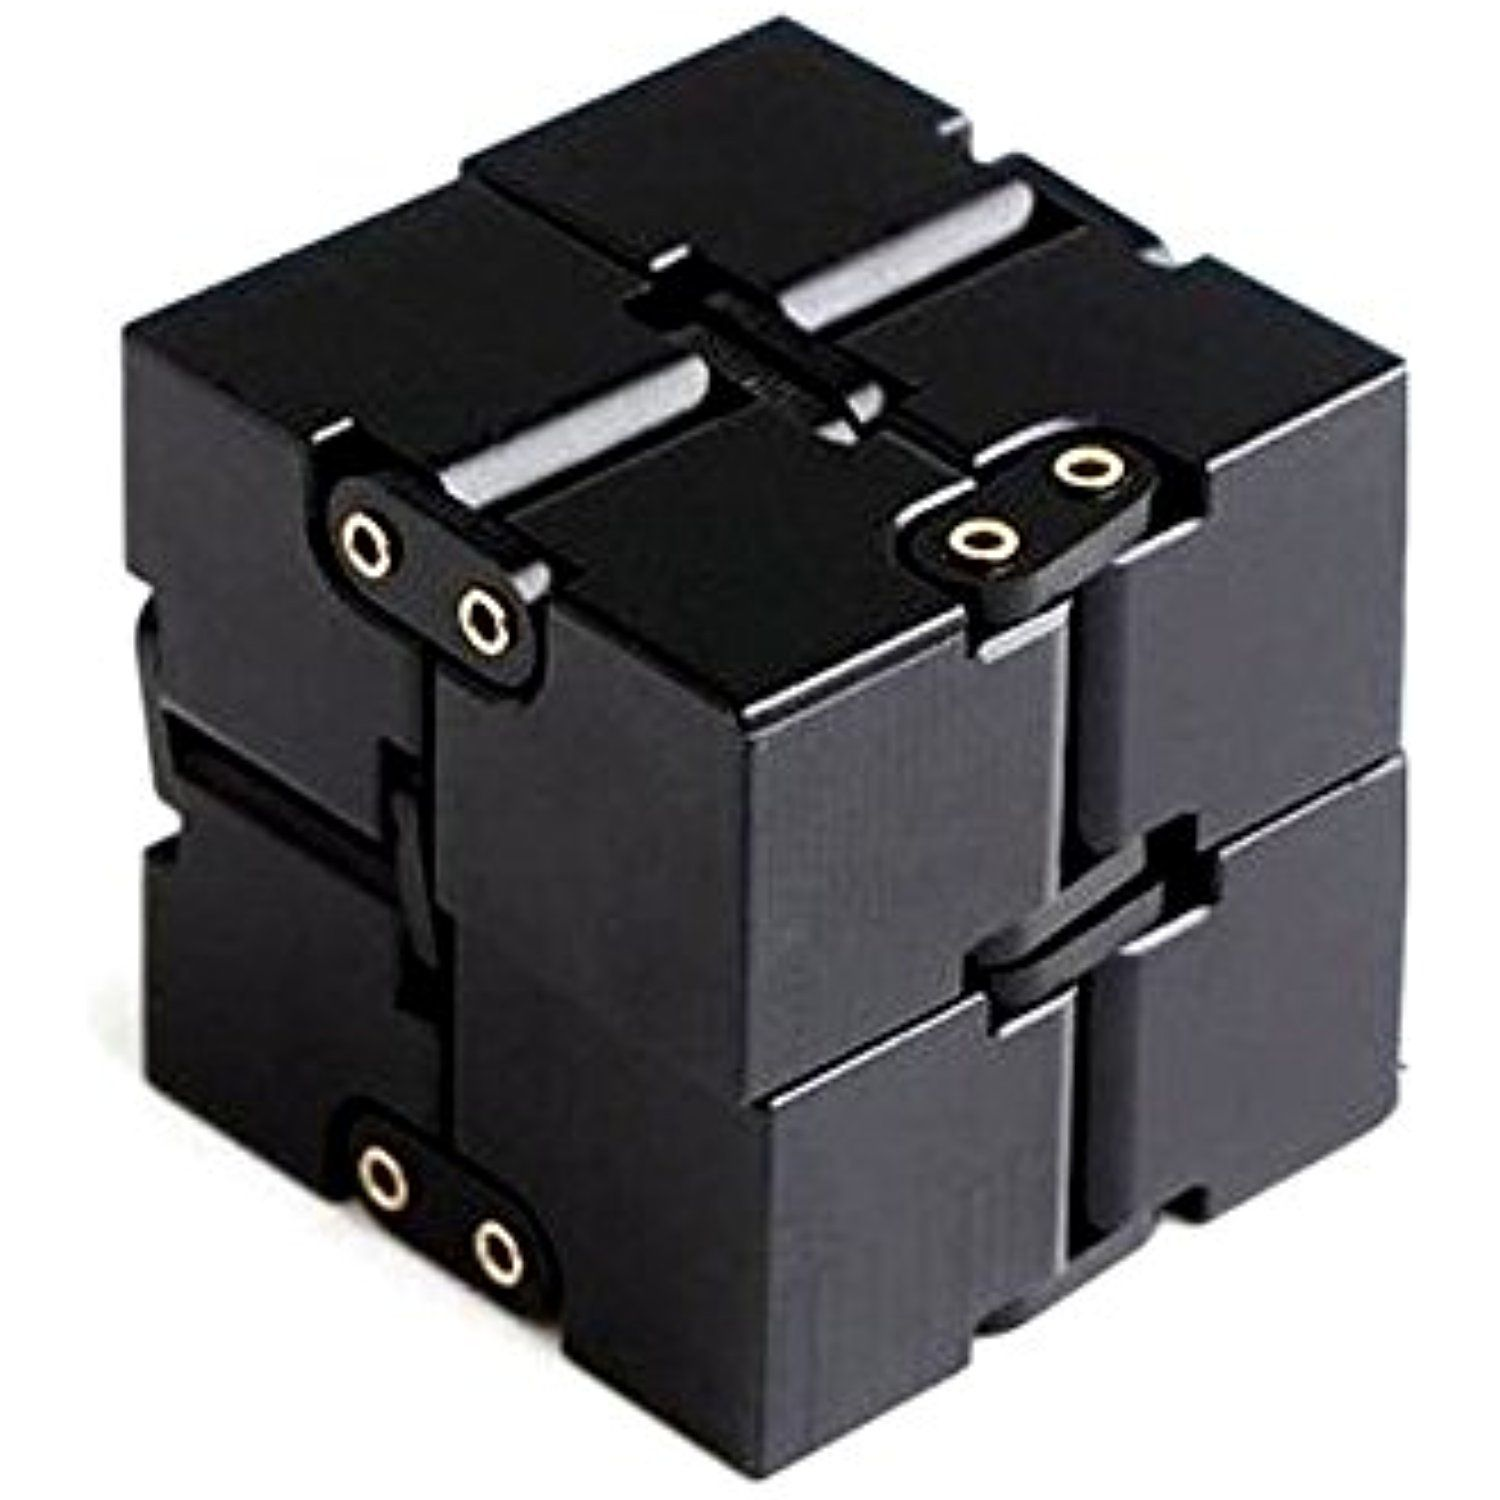 Infinity Cube Exmight Rubika S Cube Free Style Fidget Cube Perfect For Adults And Kids Noveltygagtoys Cube Toy Fidget Spinner Toy Fidget Cube